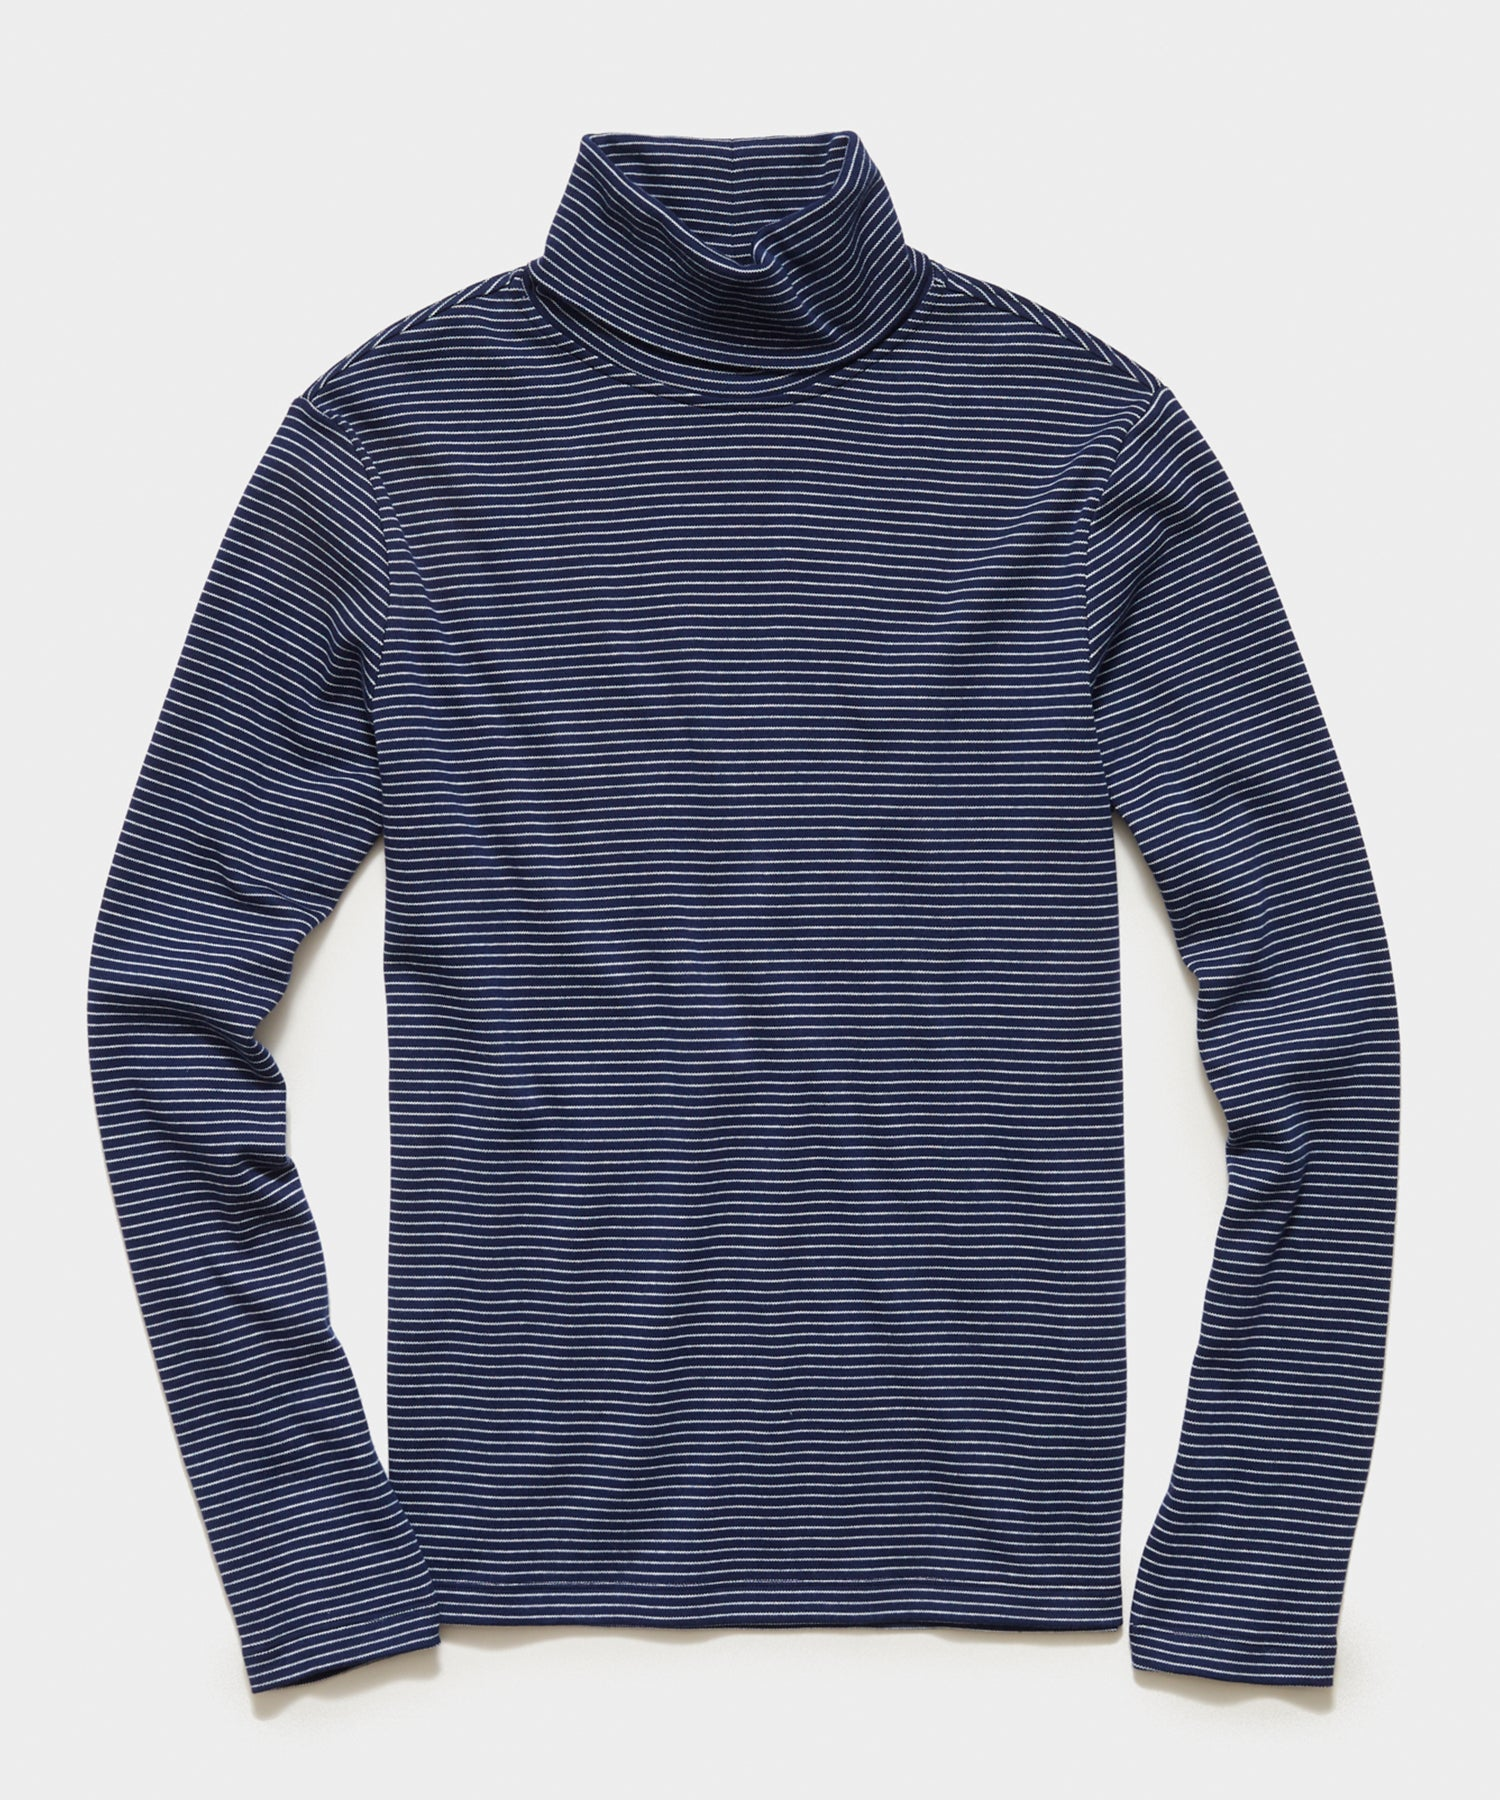 Jersey Stripe Turtleneck in Navy